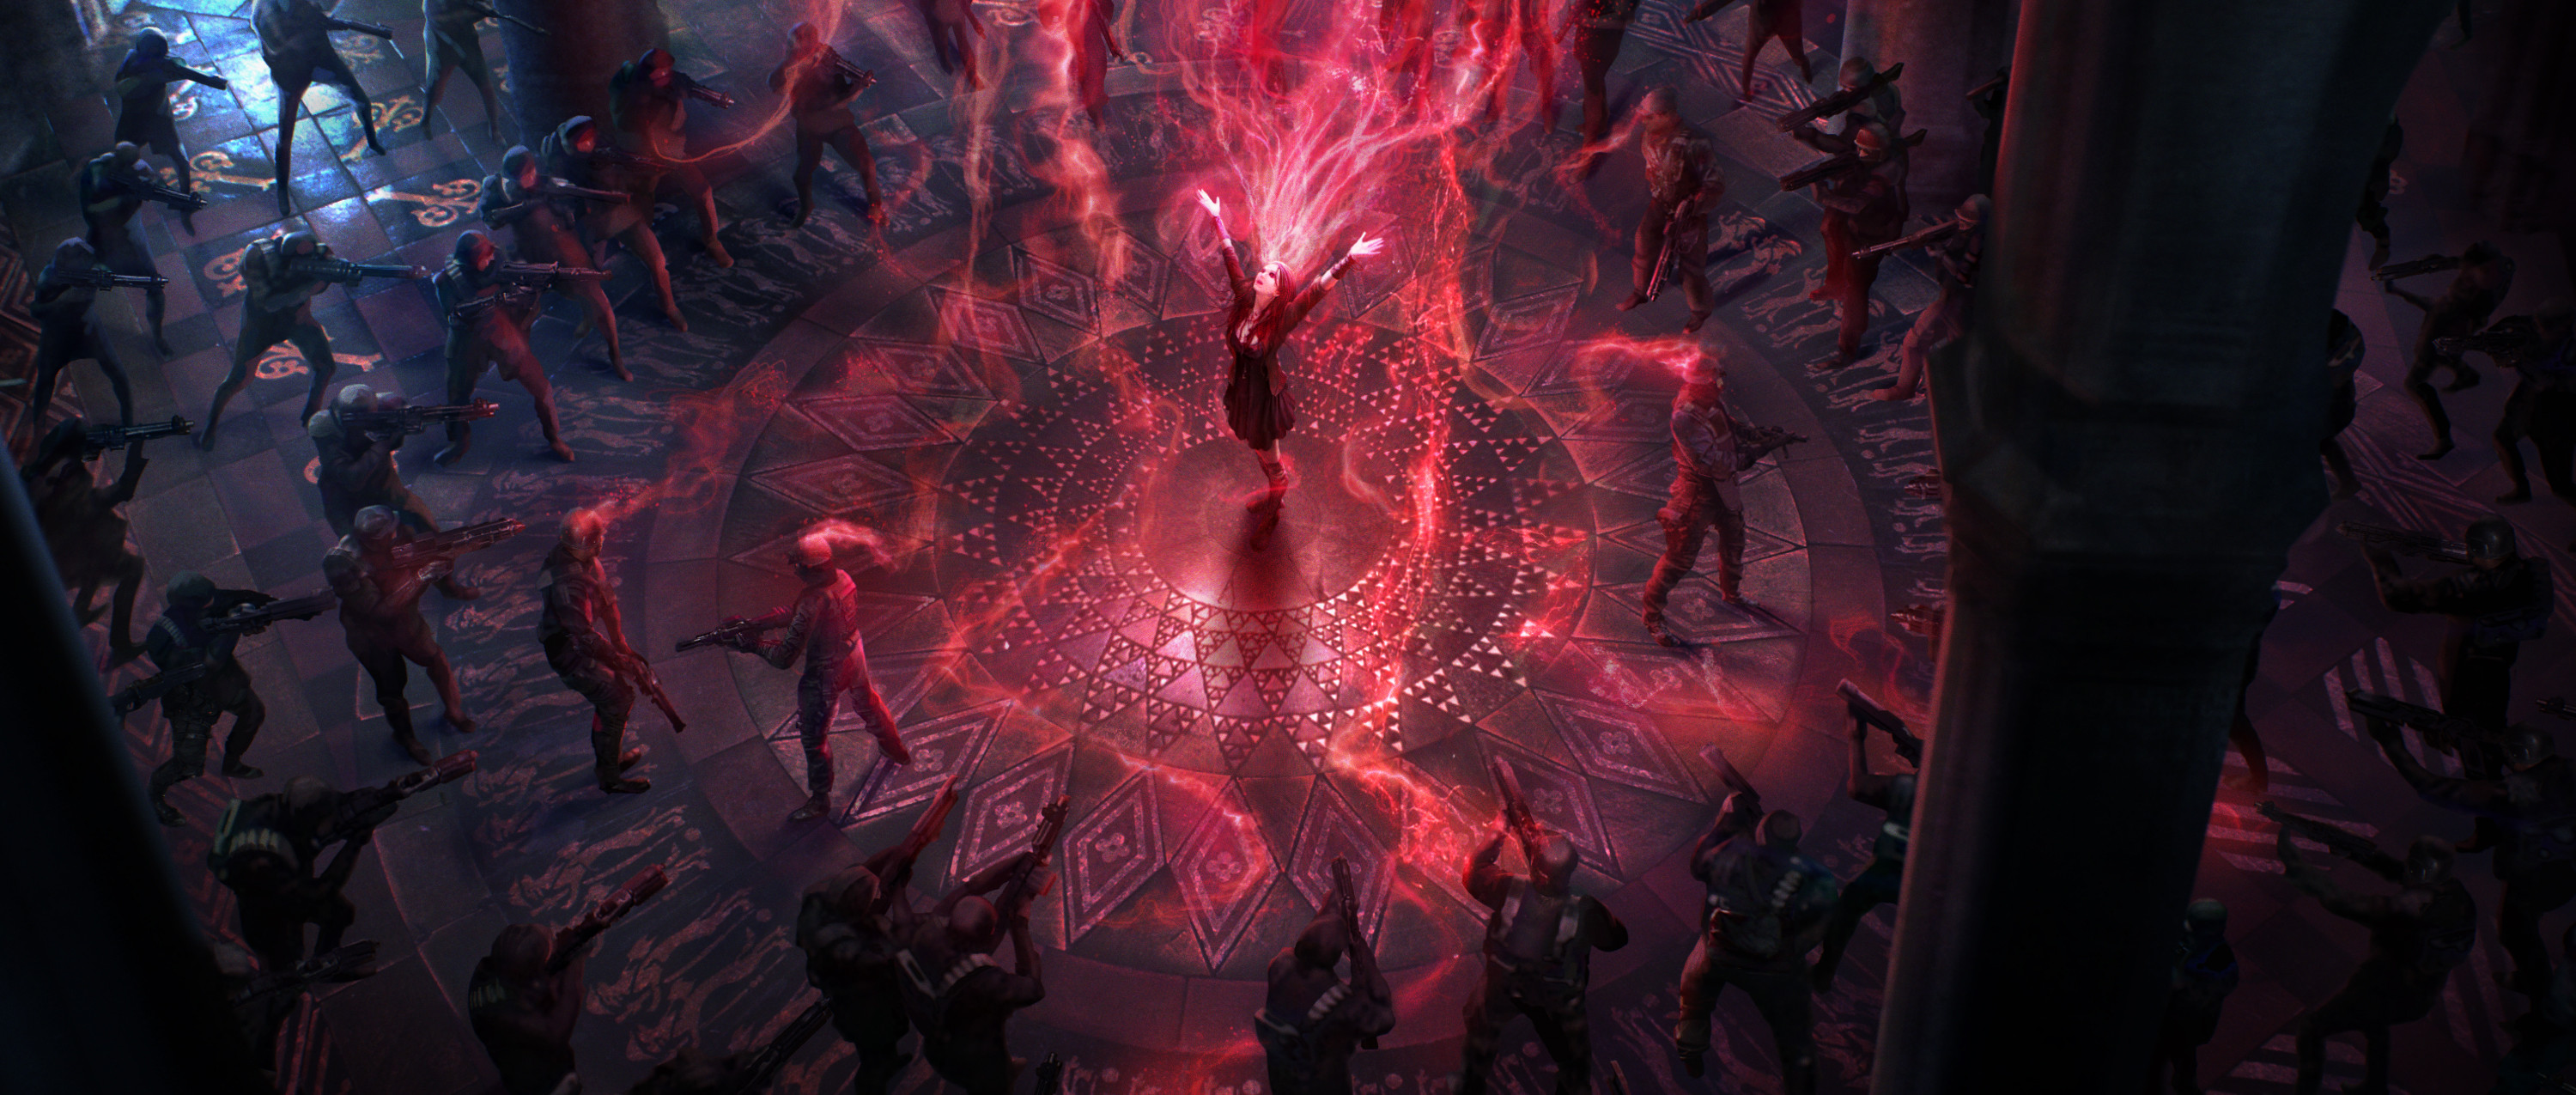 Wanda uses her mind powers on ostile targets, making them fight each others. While there is a similar church in the movie, the mind controlling action happens outside of it, when the she compels the Sokovians to escape.